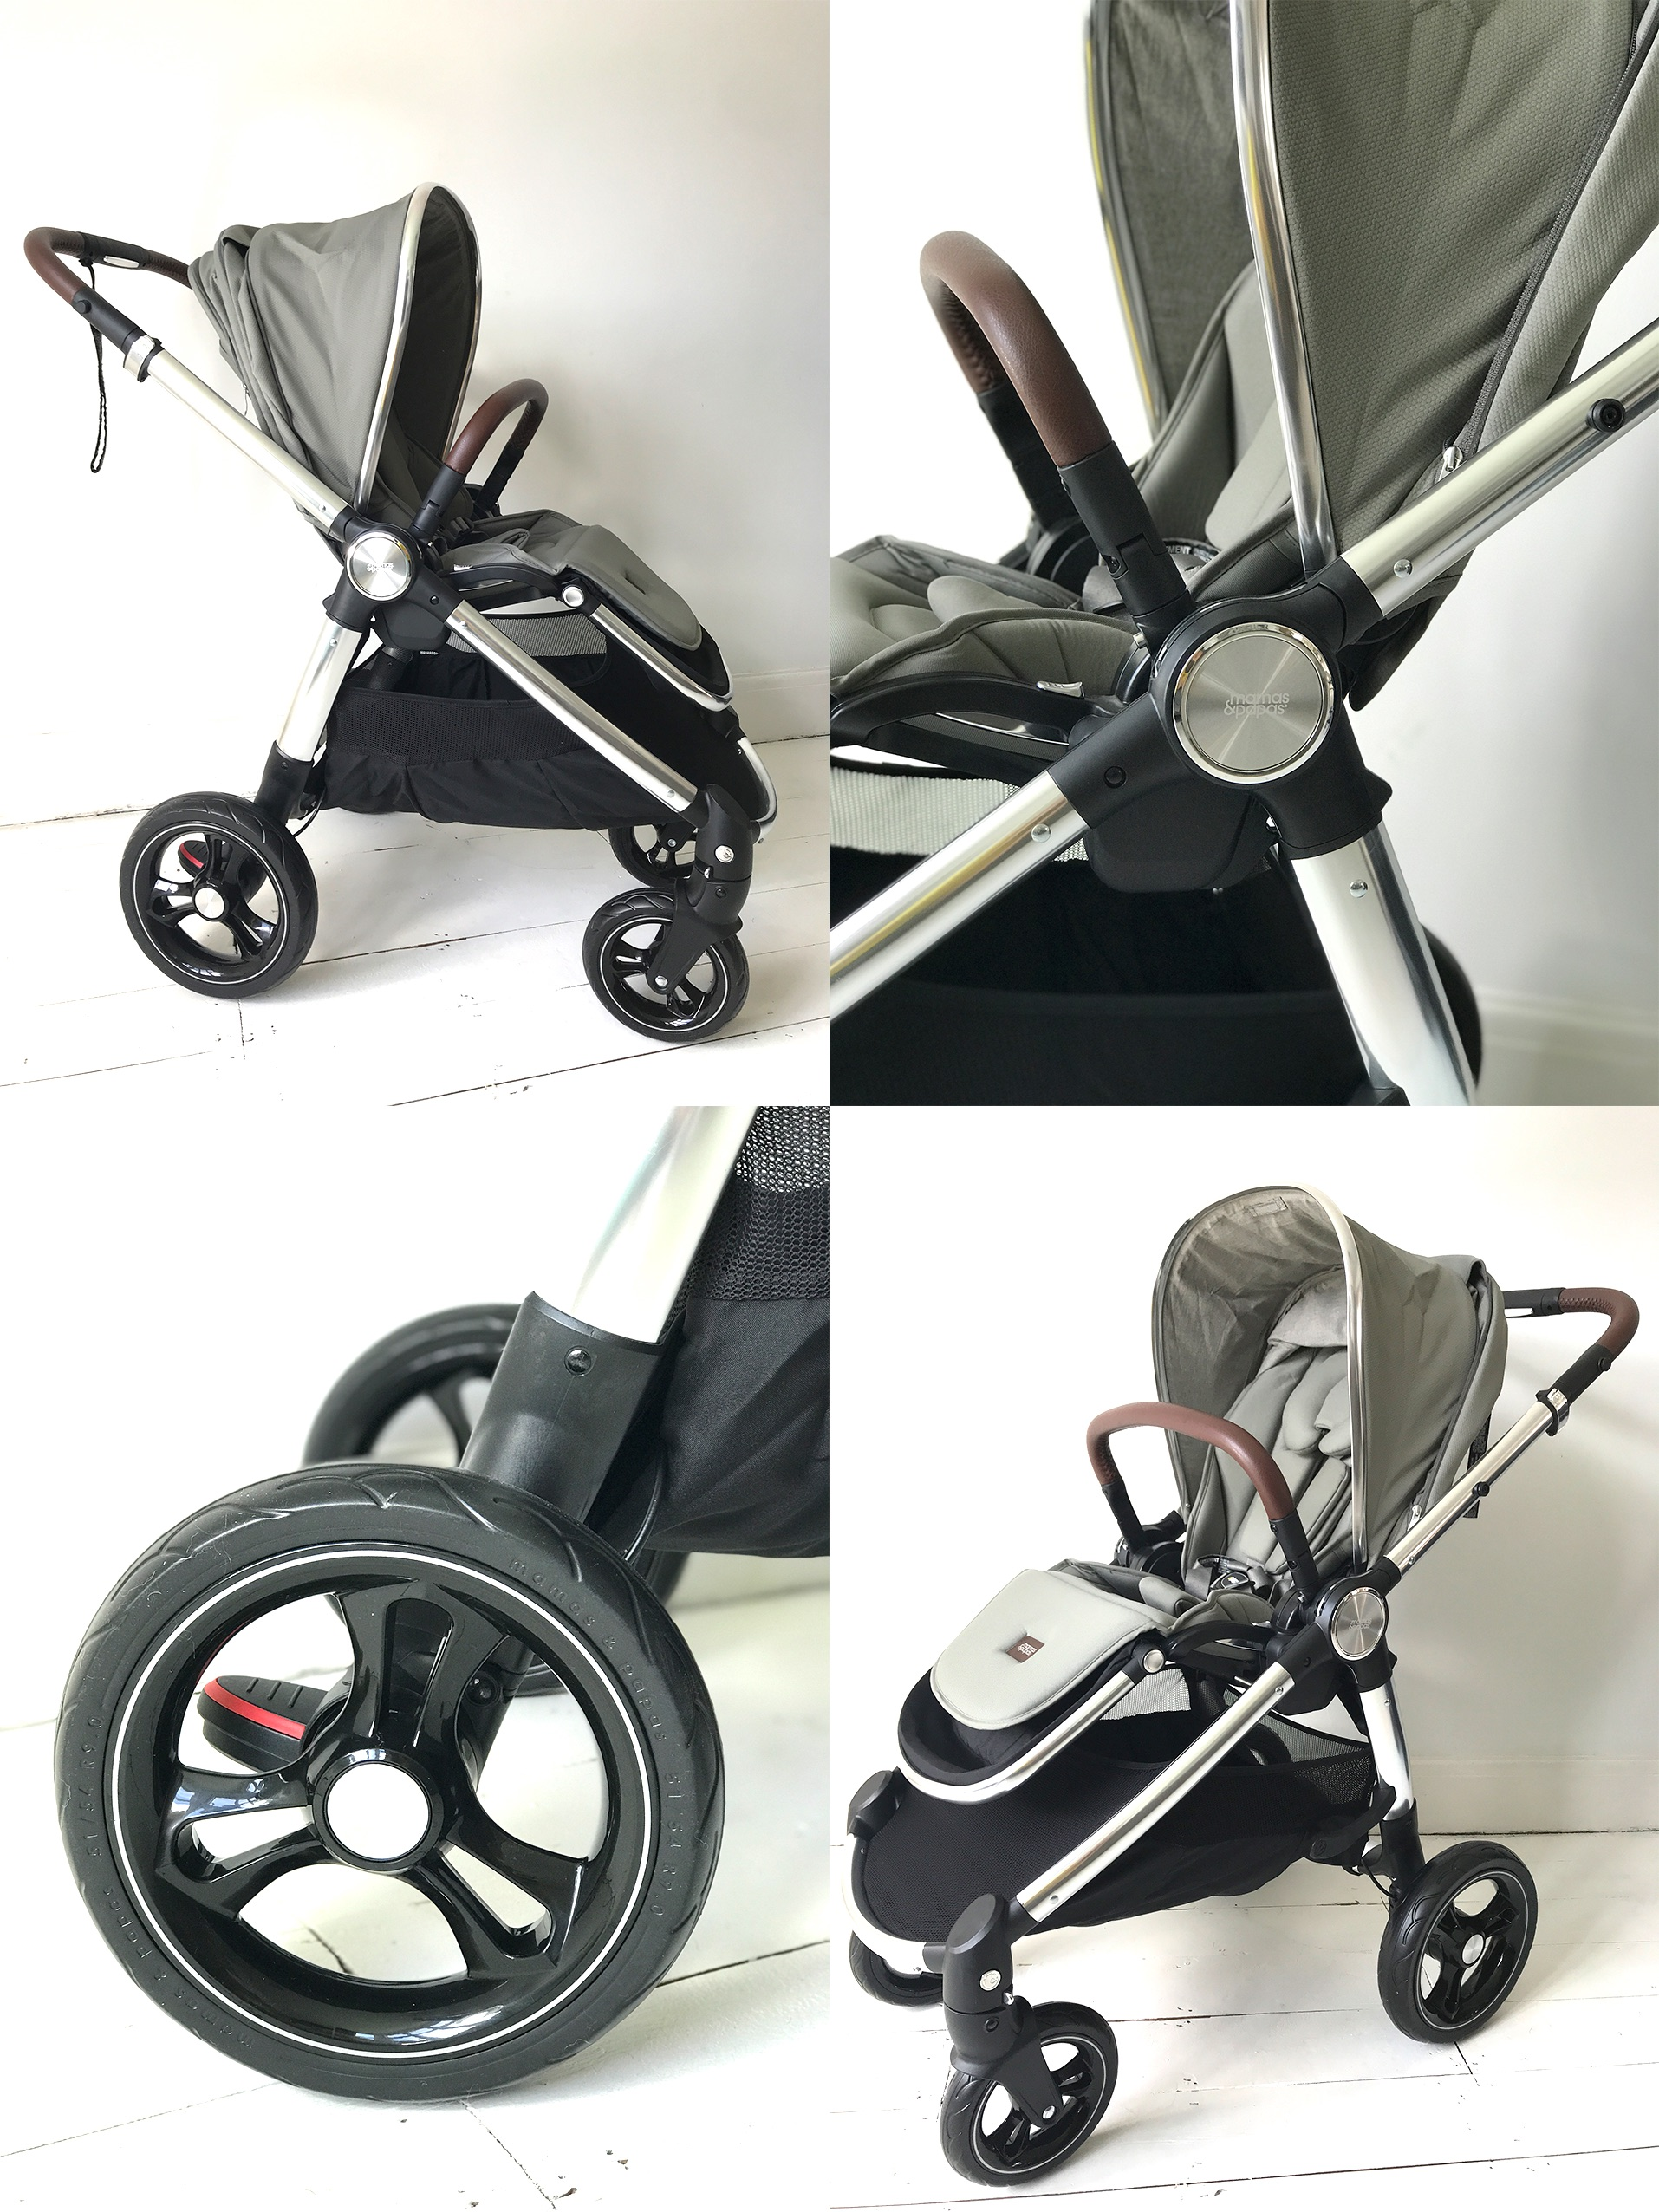 Dadsnet reviews 6 of the UK's best pushchairs in 2018, Mamas and Papas Ocarro%, product-review%